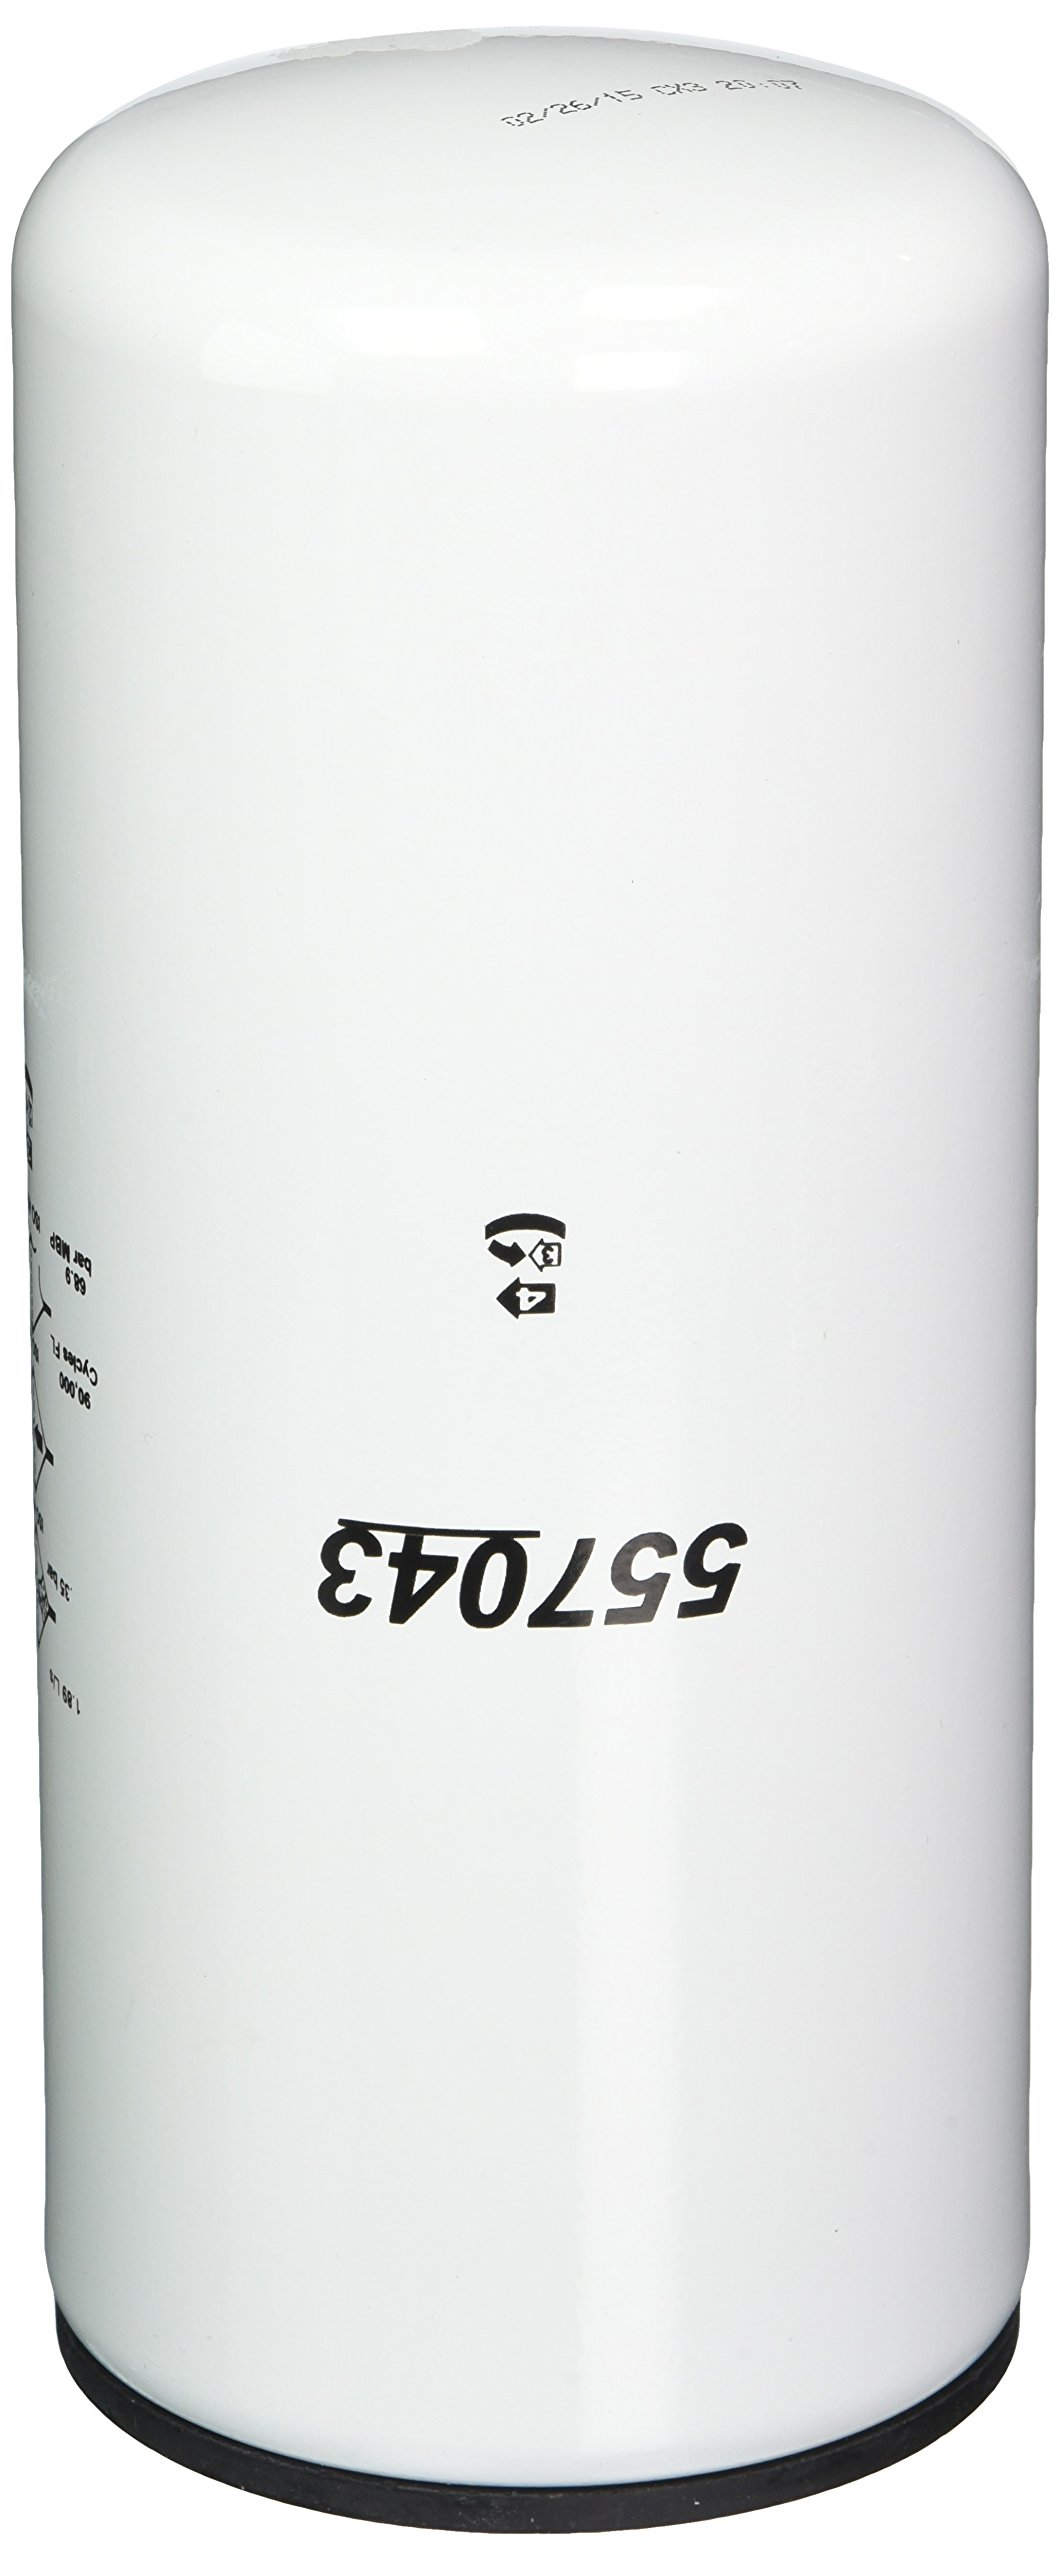 WIX Filters - 57043 Heavy Duty Spin-On Hydraulic Filter, Pack of 1